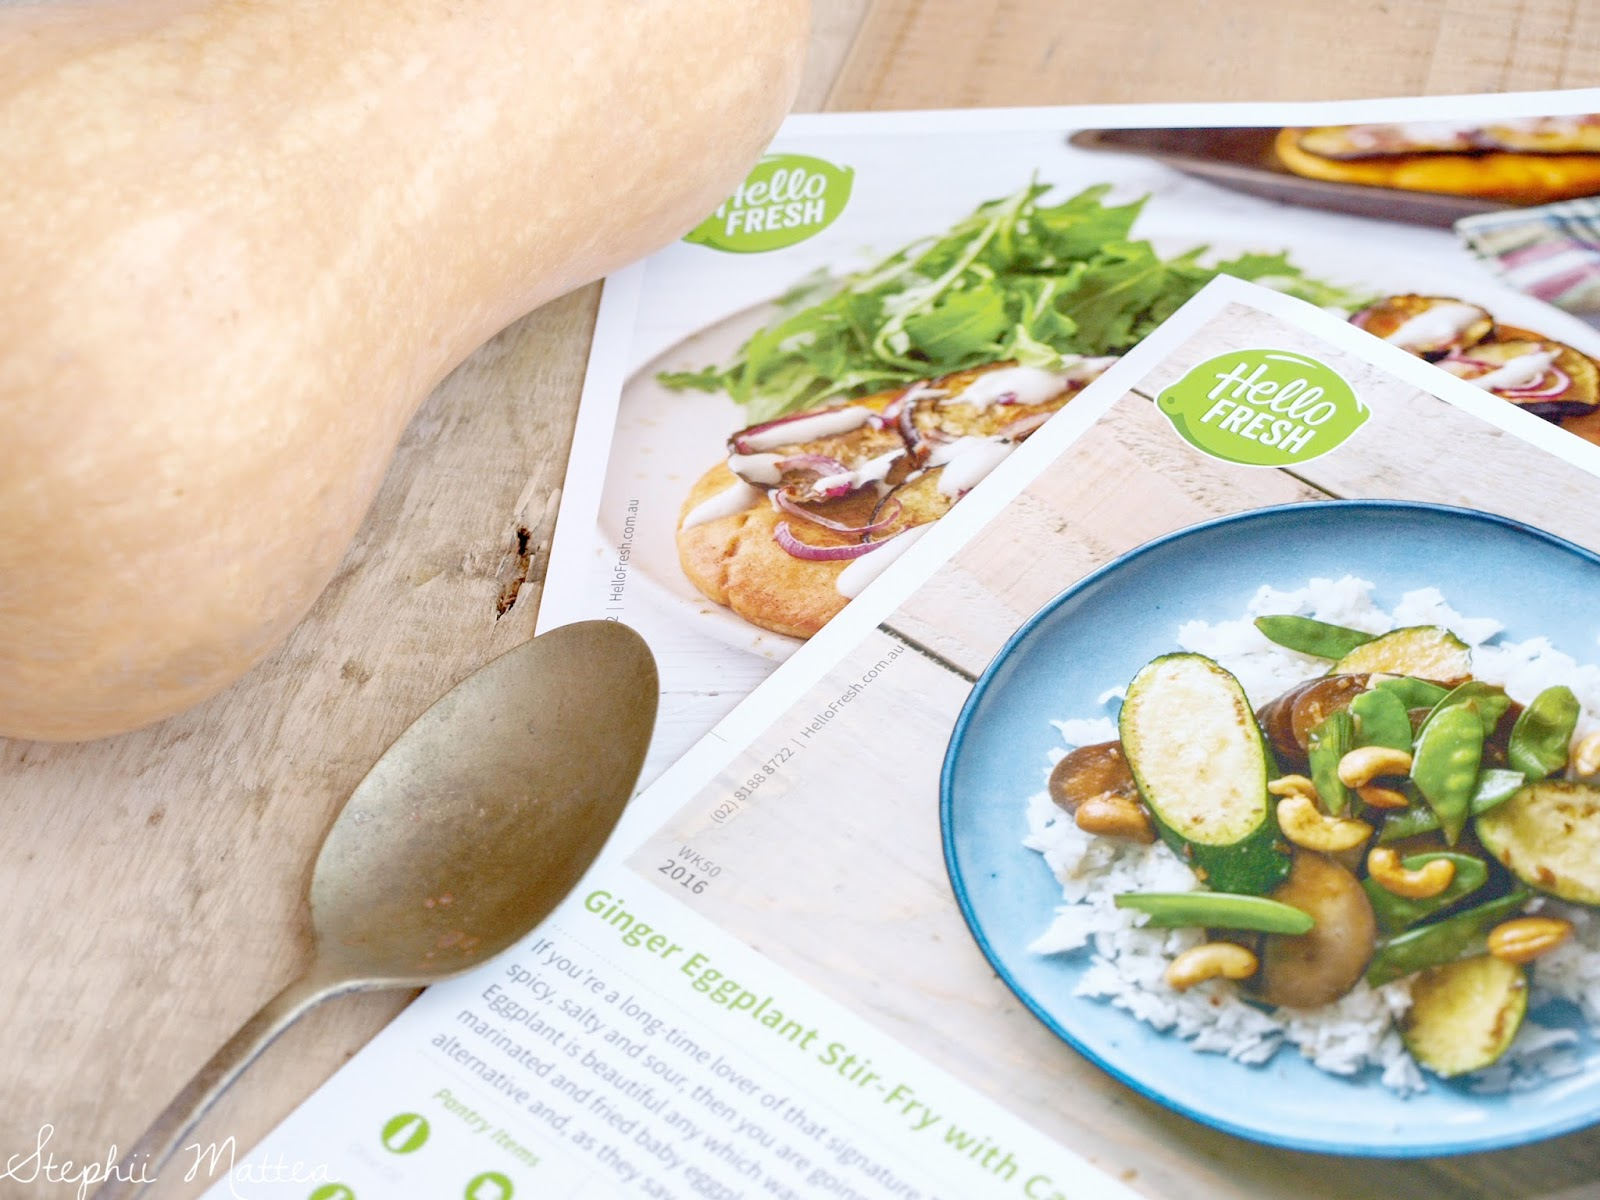 Check Availability Of Meal Kit Delivery Service Hellofresh